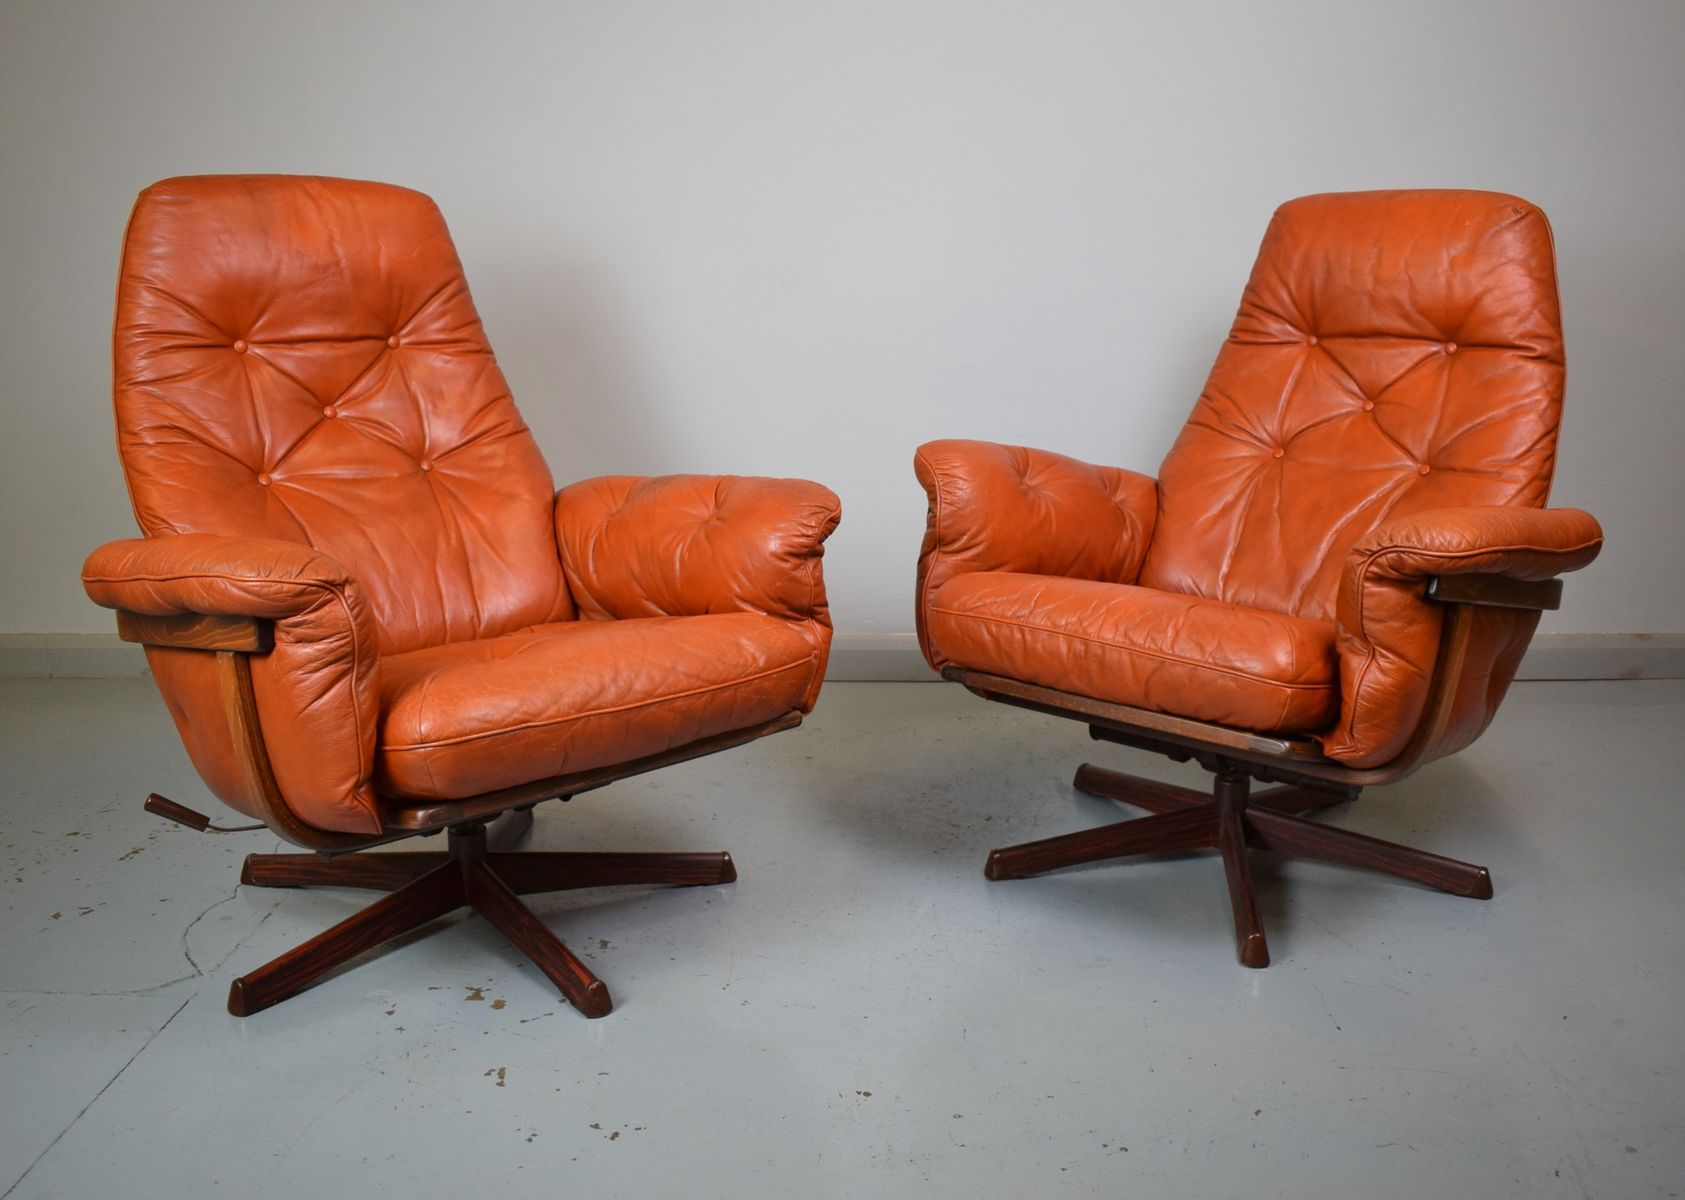 swedish leather recliner chairs ergonomic chair for home tan red reclining swivel from göte